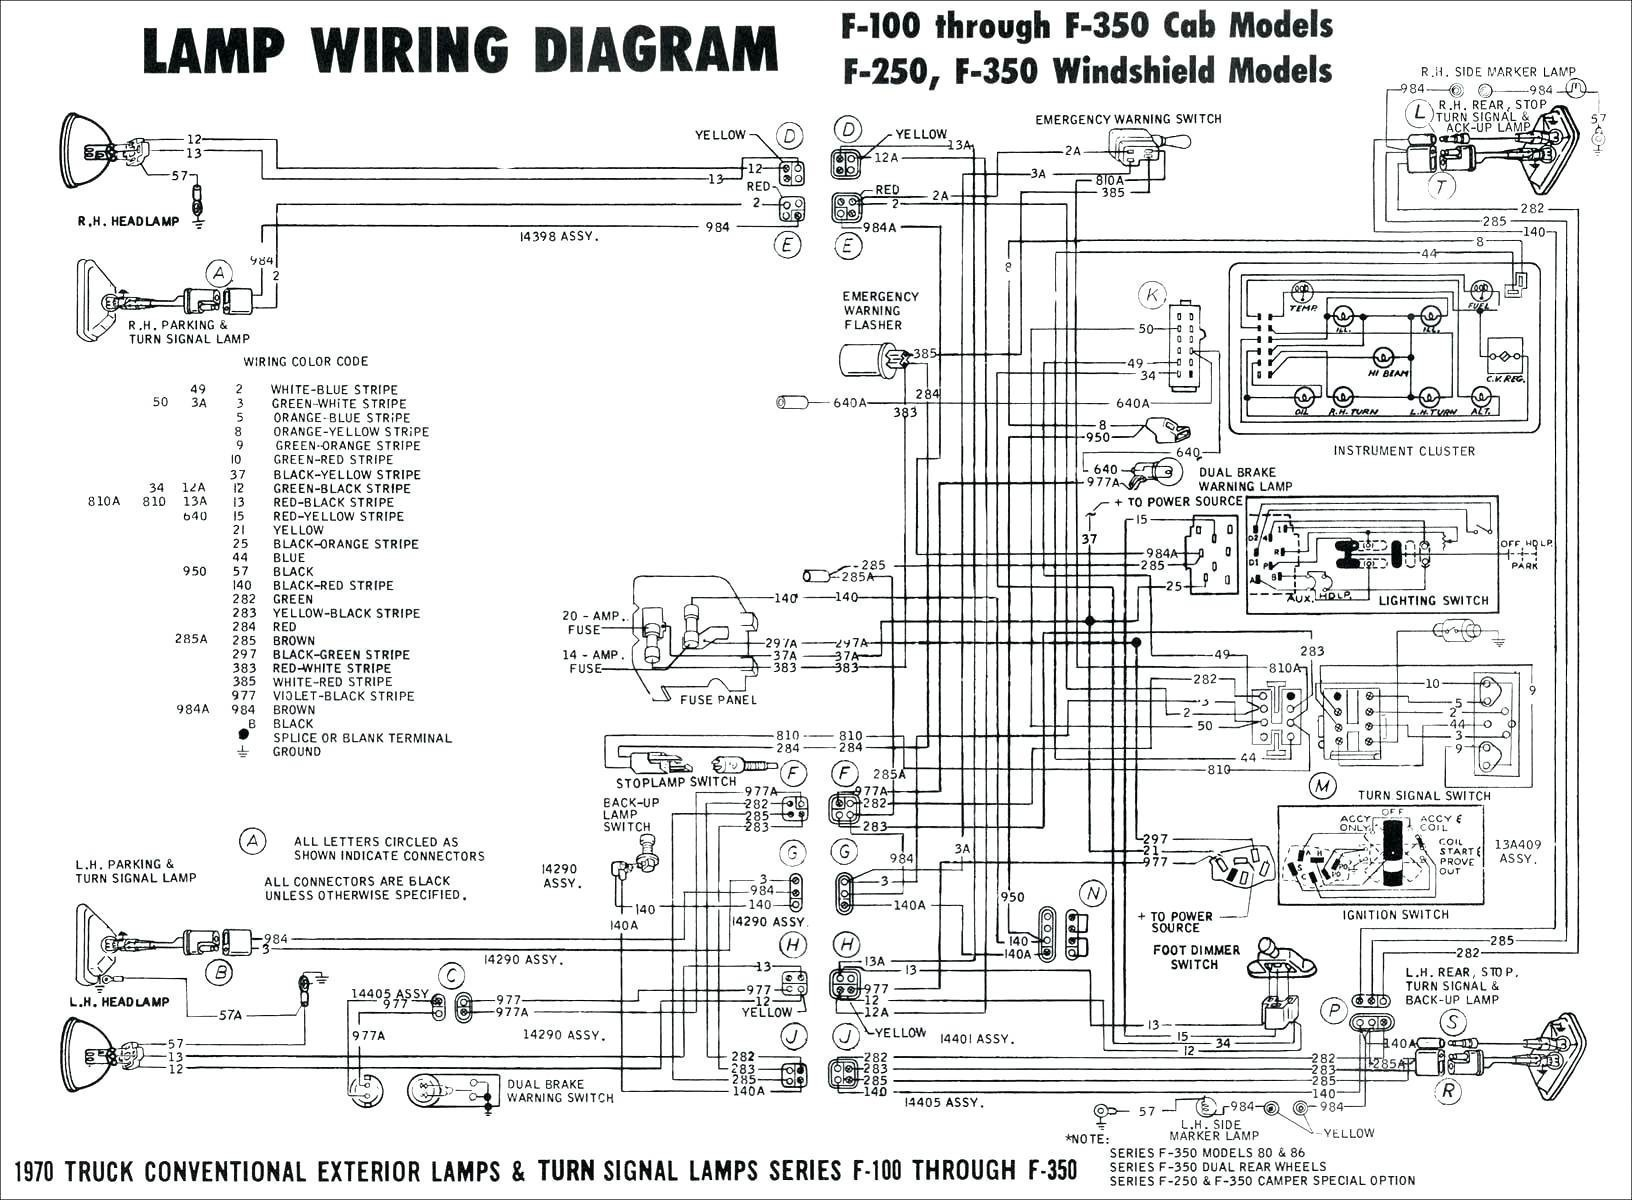 Hyundai Accent Wiring Diagram Circuit Diagram App Ipad New Electrical Wiring Diagram software for Of Hyundai Accent Wiring Diagram